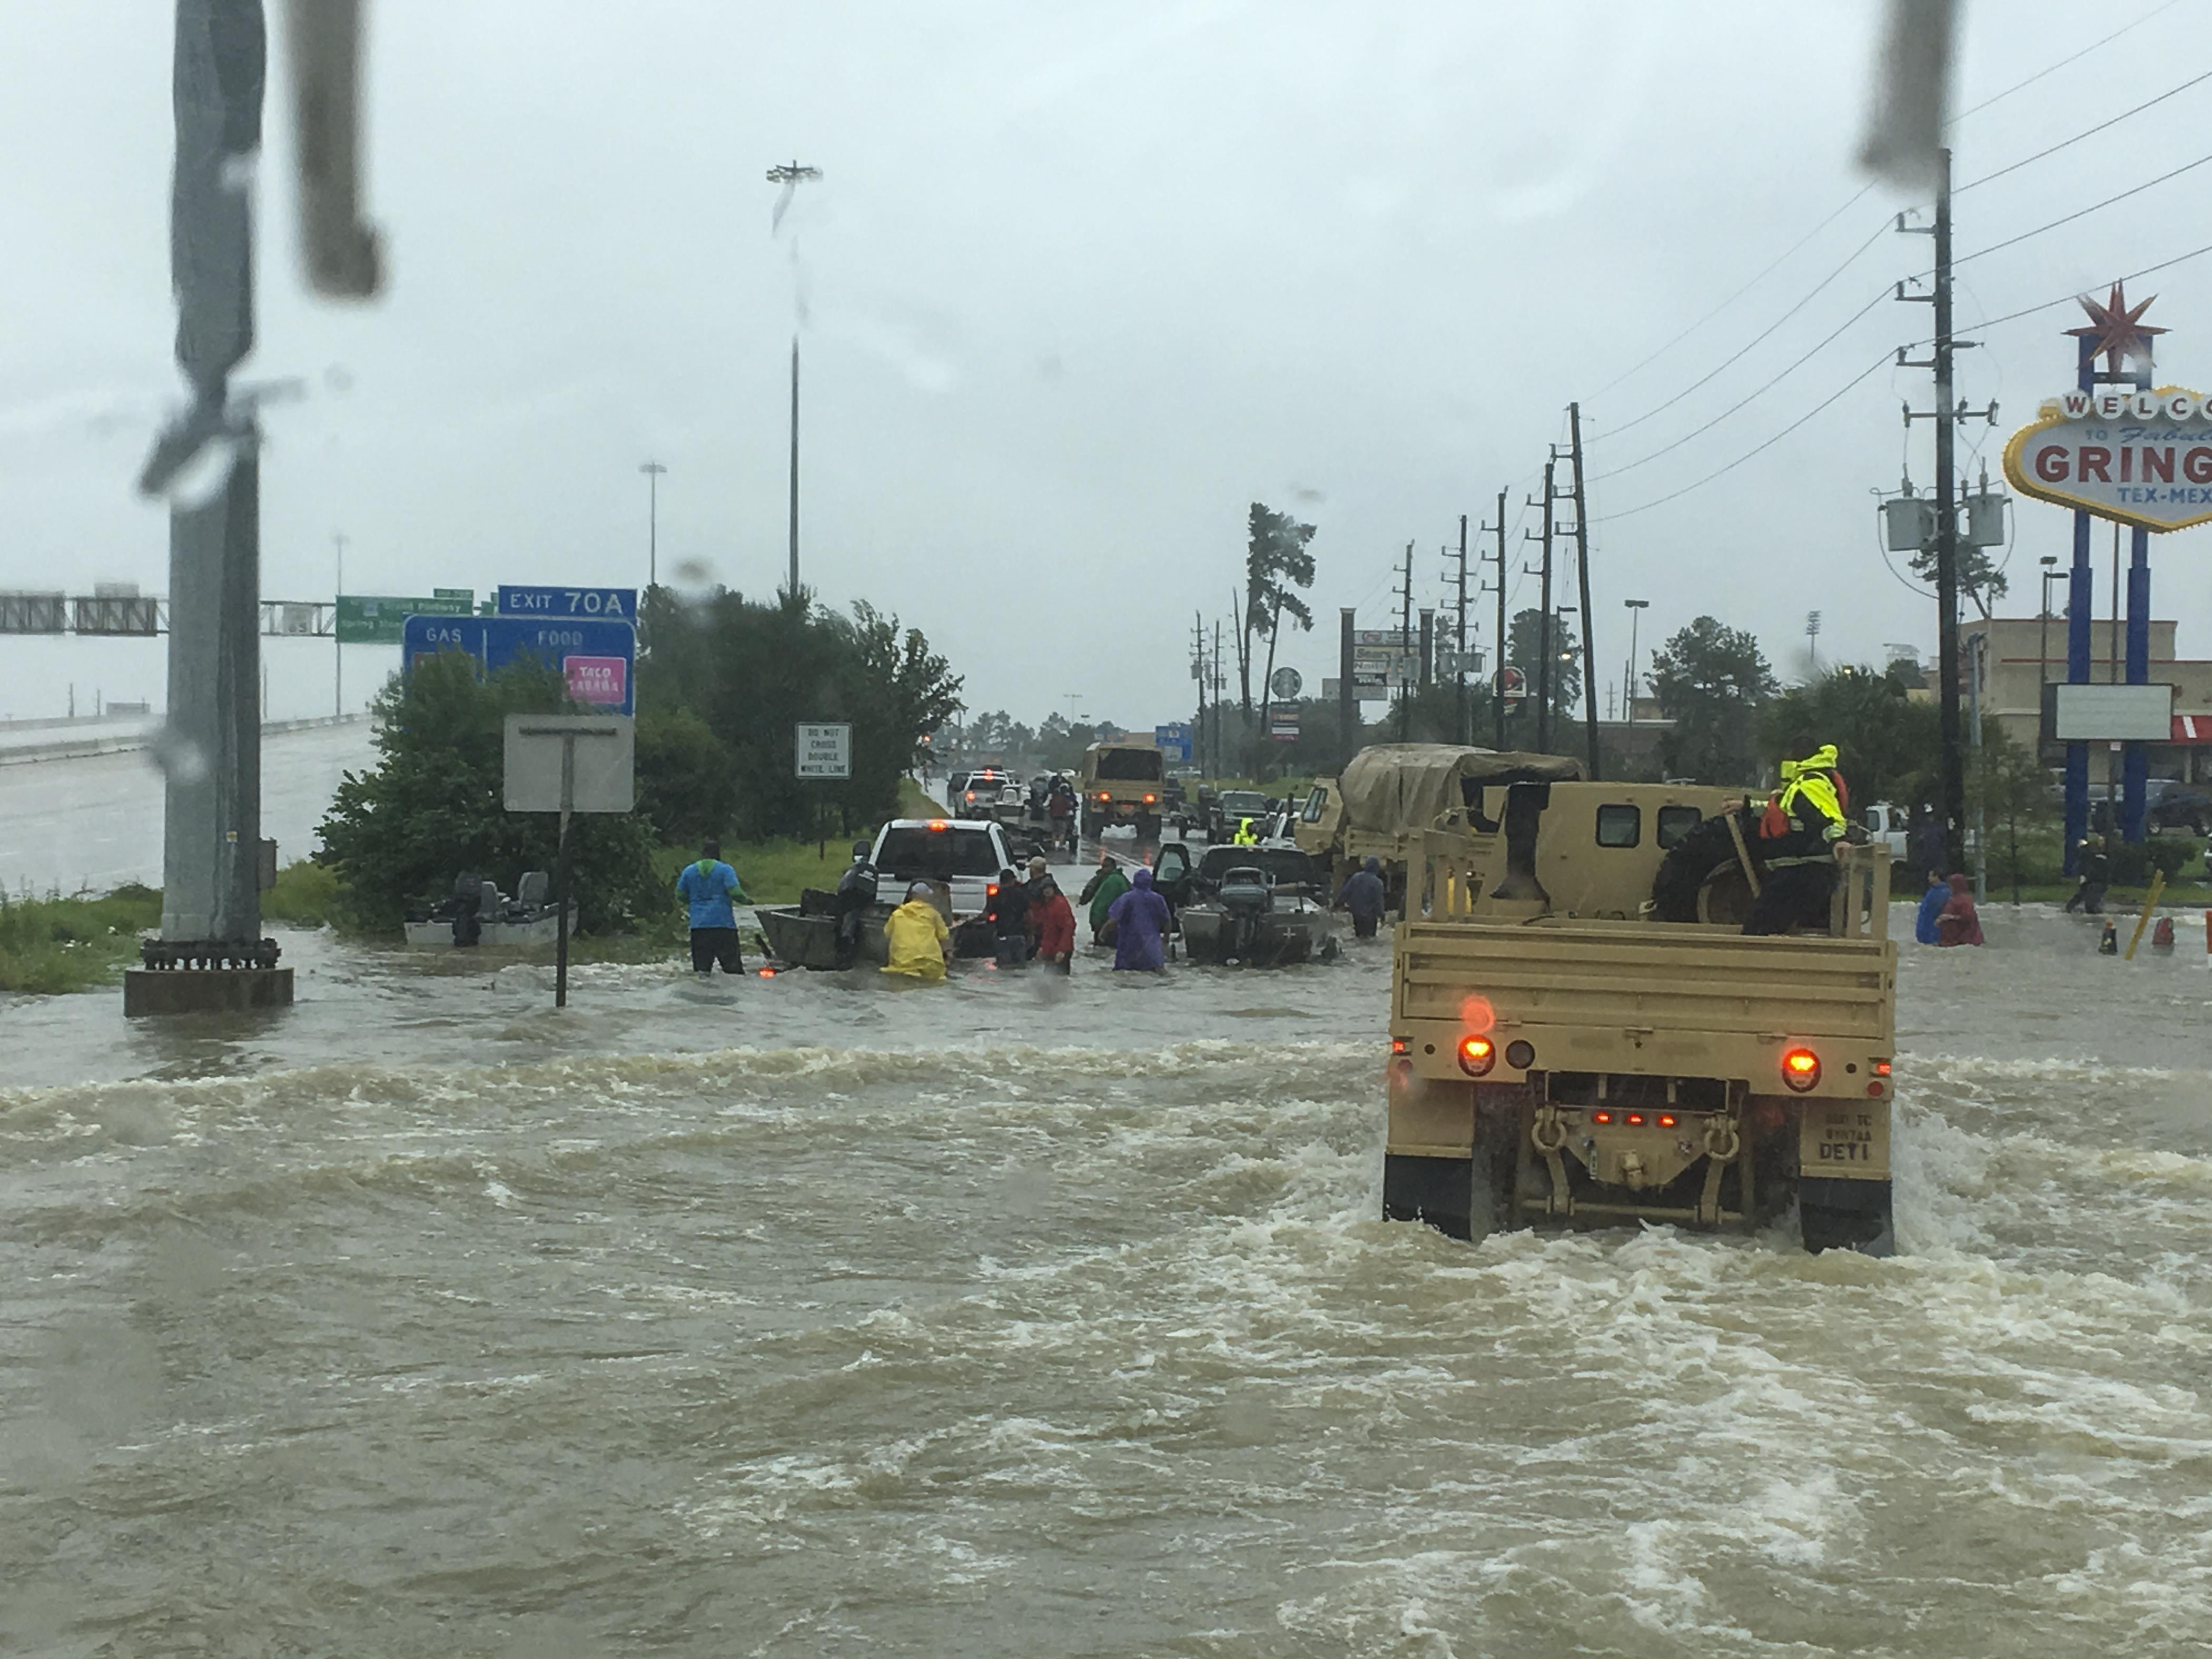 Hurricane Harvey relief efforts continue with 10,000-plus troops on duty